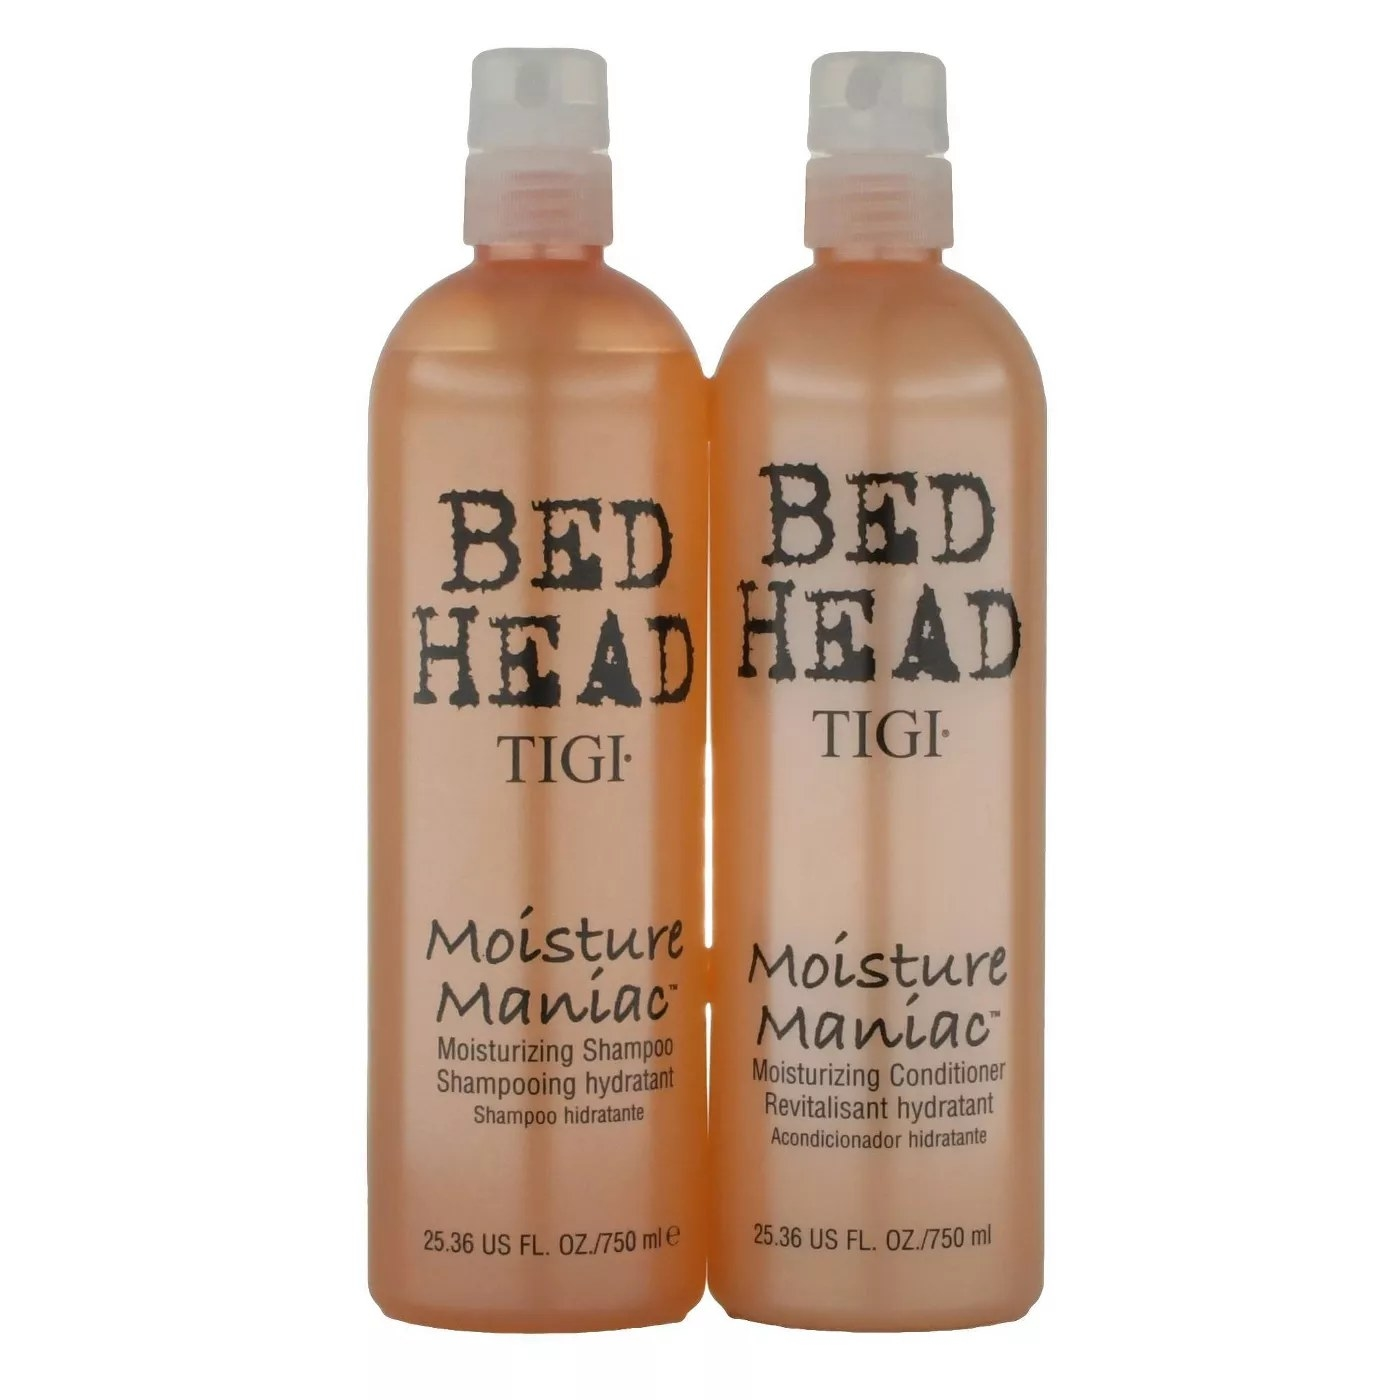 Bed Head's Moisture Maniac Shampoo and Conditioner